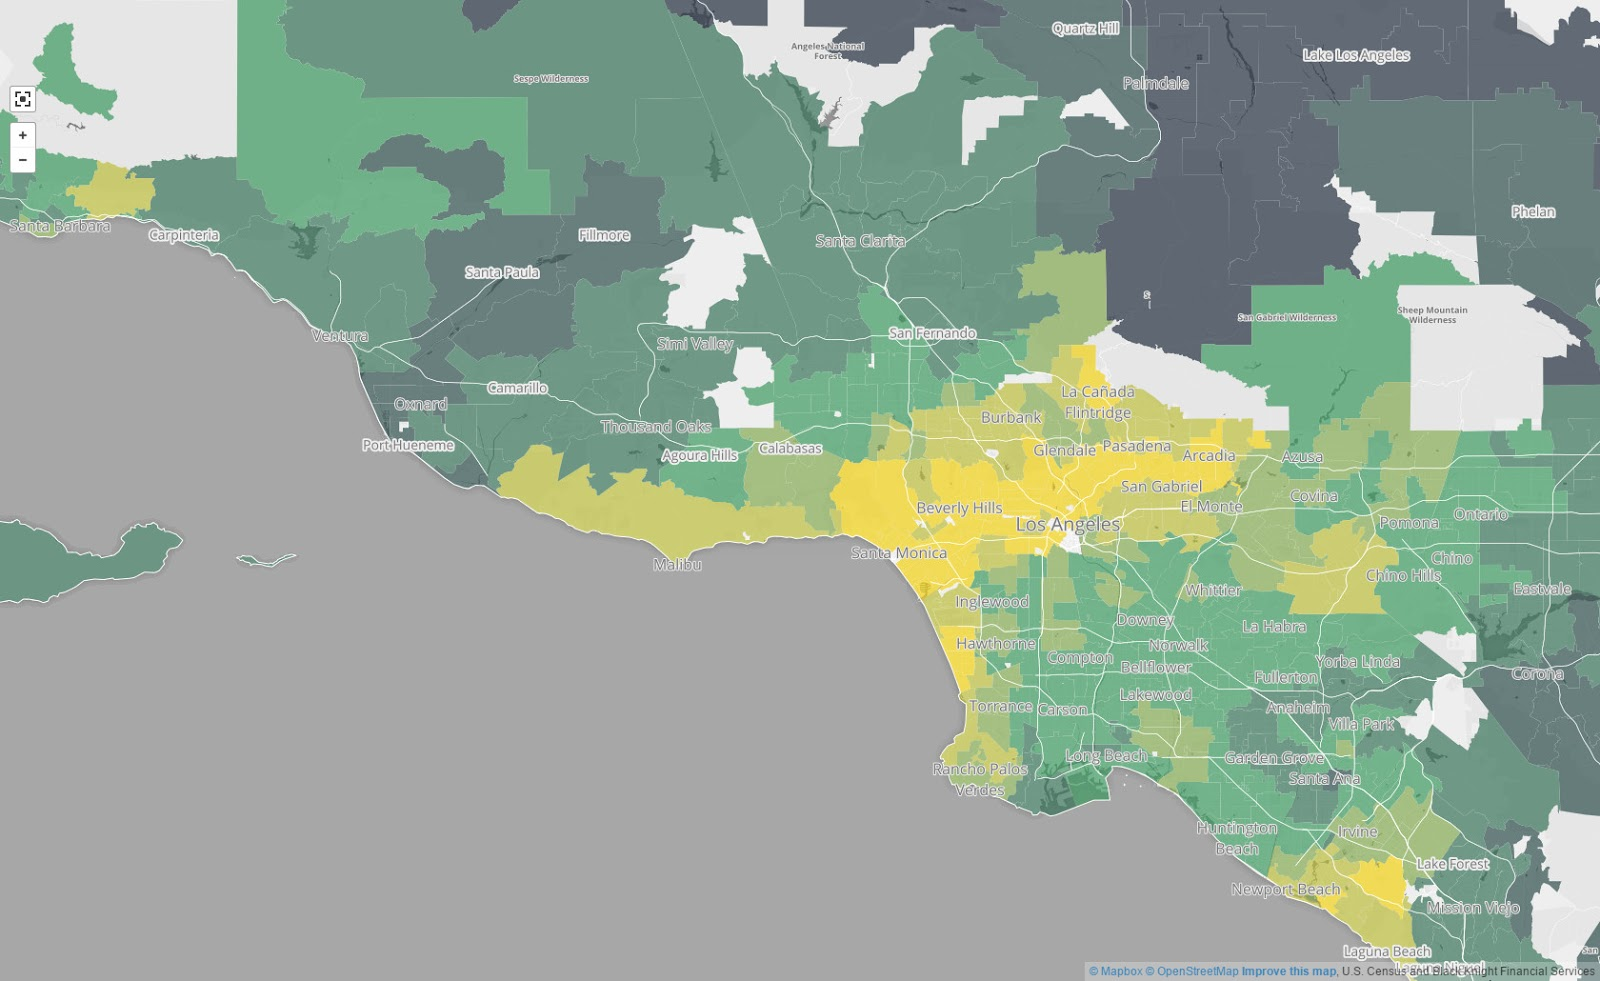 America's great housing divide: Are you a winner or loser? (Los Angeles)